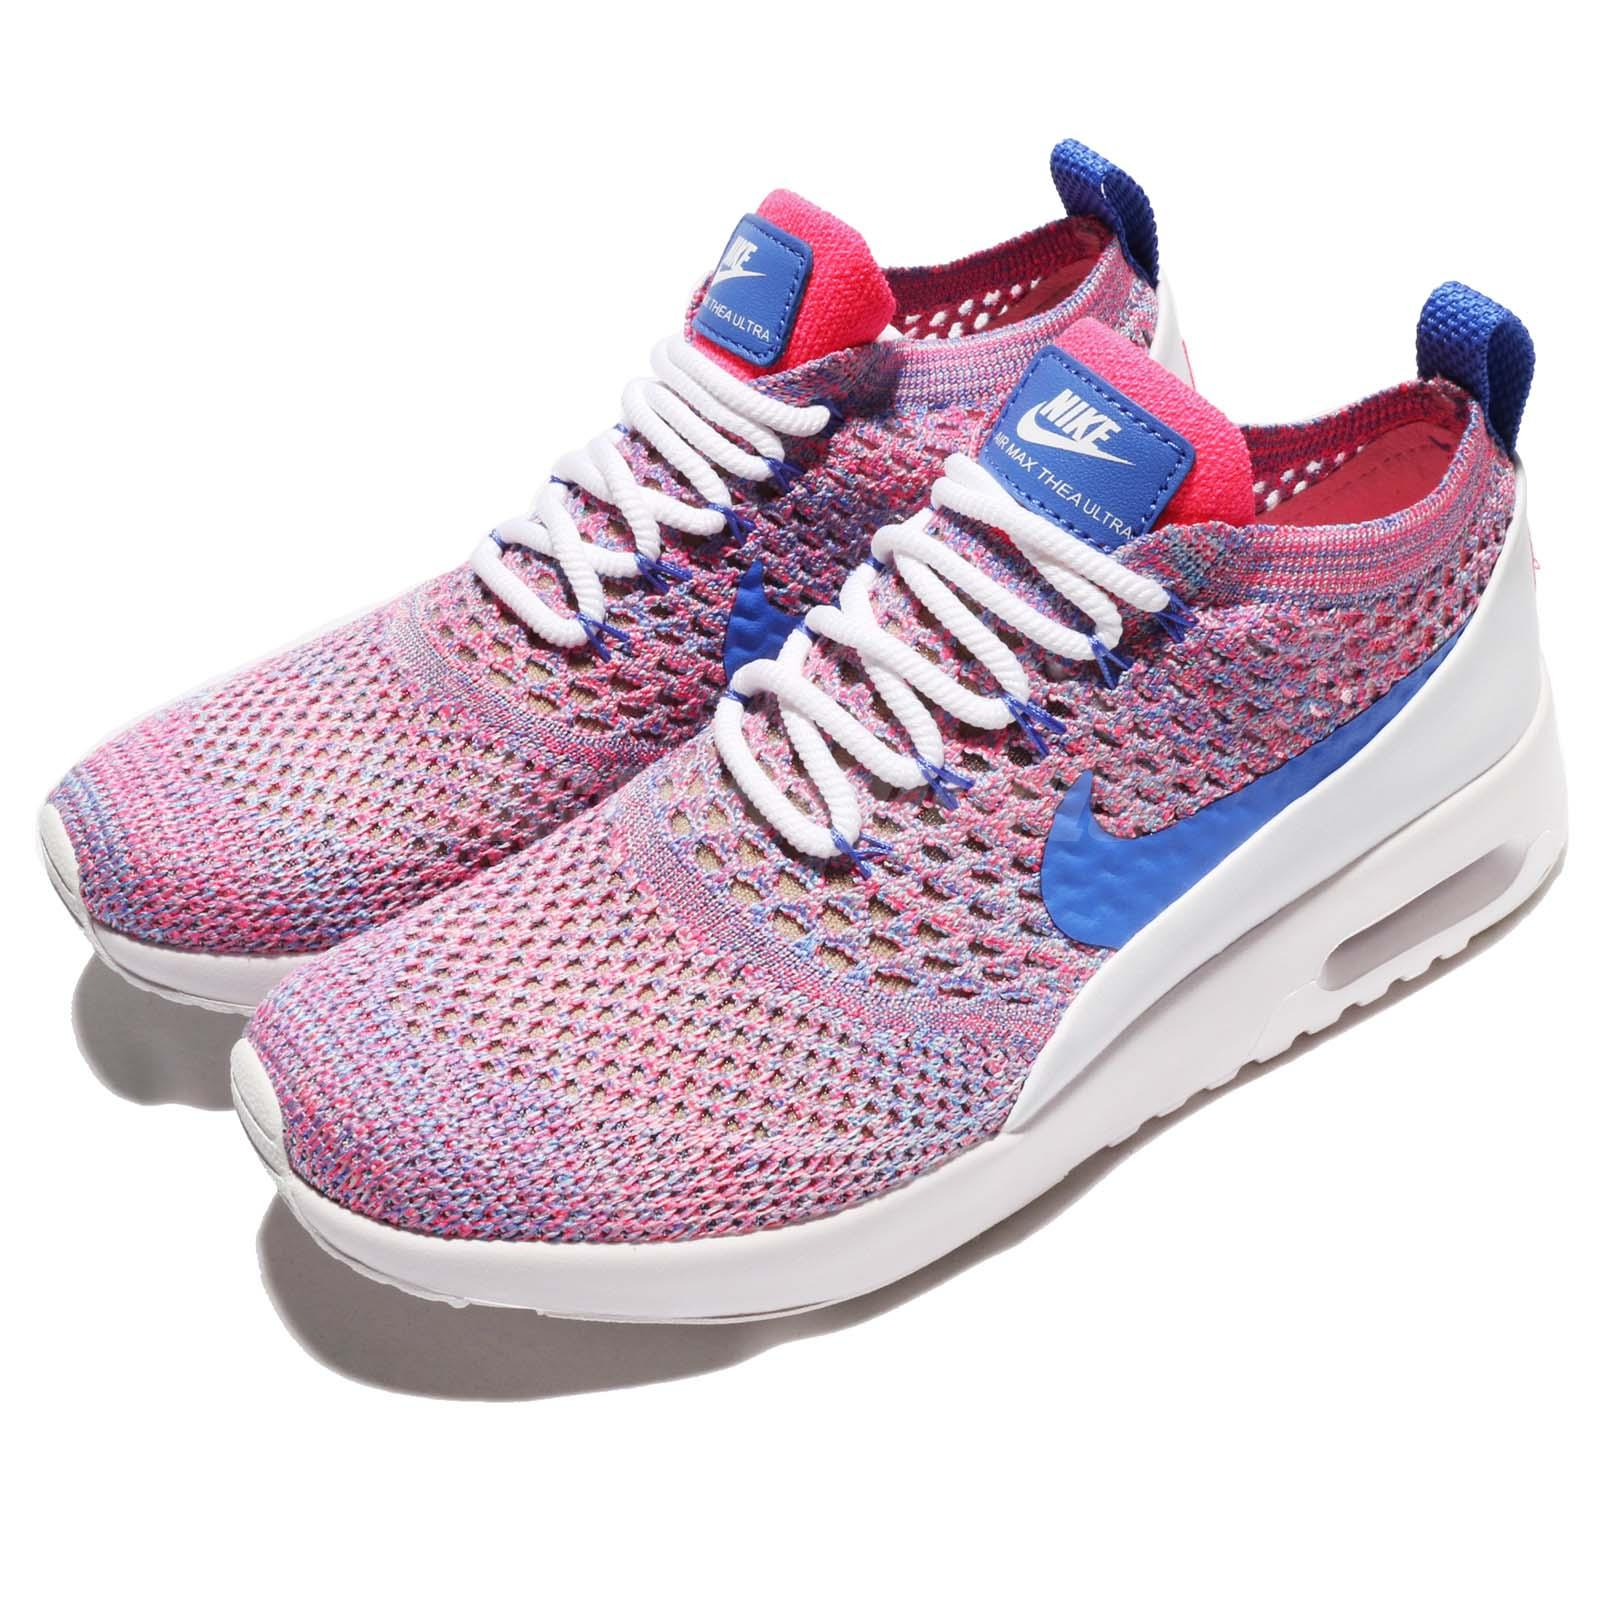 ce43bab65f9a Details about Nike Wmns Air Max Thea Ultra FK Flyknit Pink Blue Women  Running Shoes 881175-100